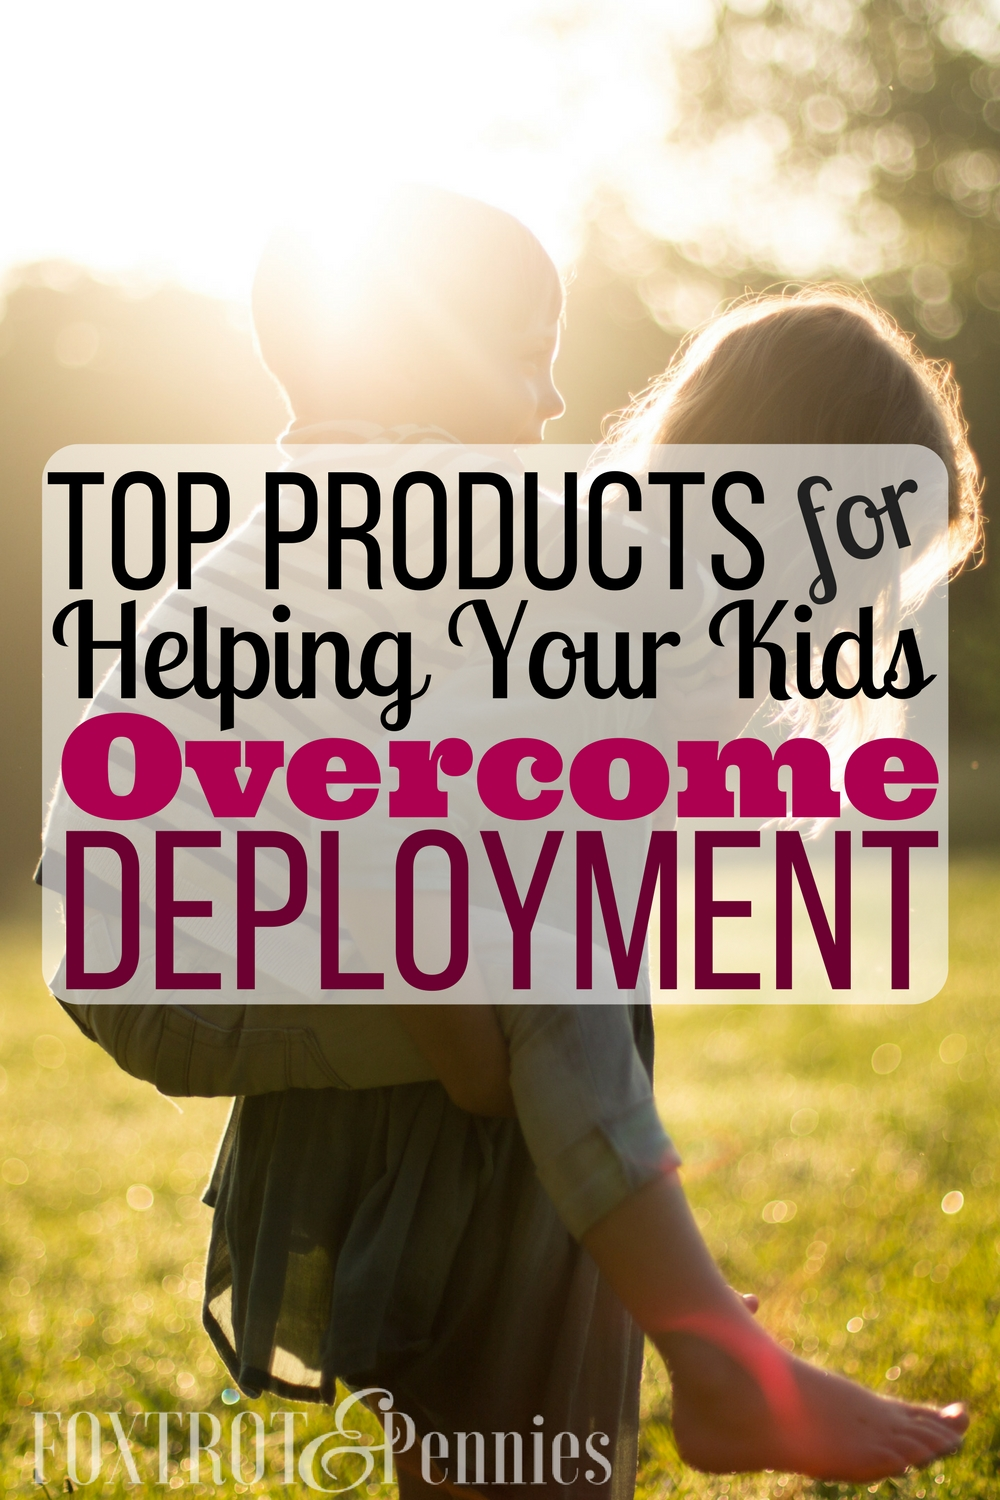 These amazing products have been tested by several military families to actually help your kids with deployment. Deployment is HARD but there ARE things to help your kids feel more connected!